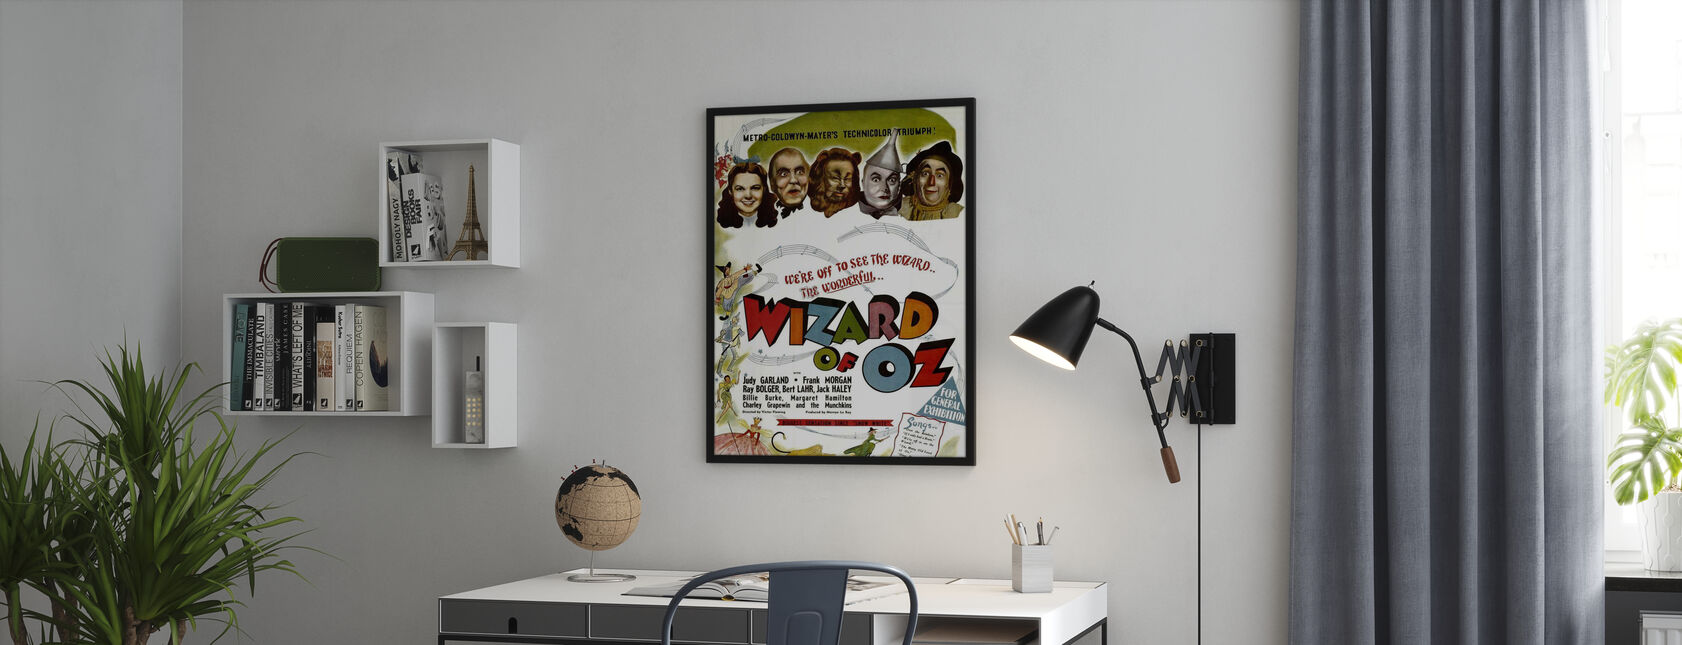 Wizard of Oz - Poster - Office